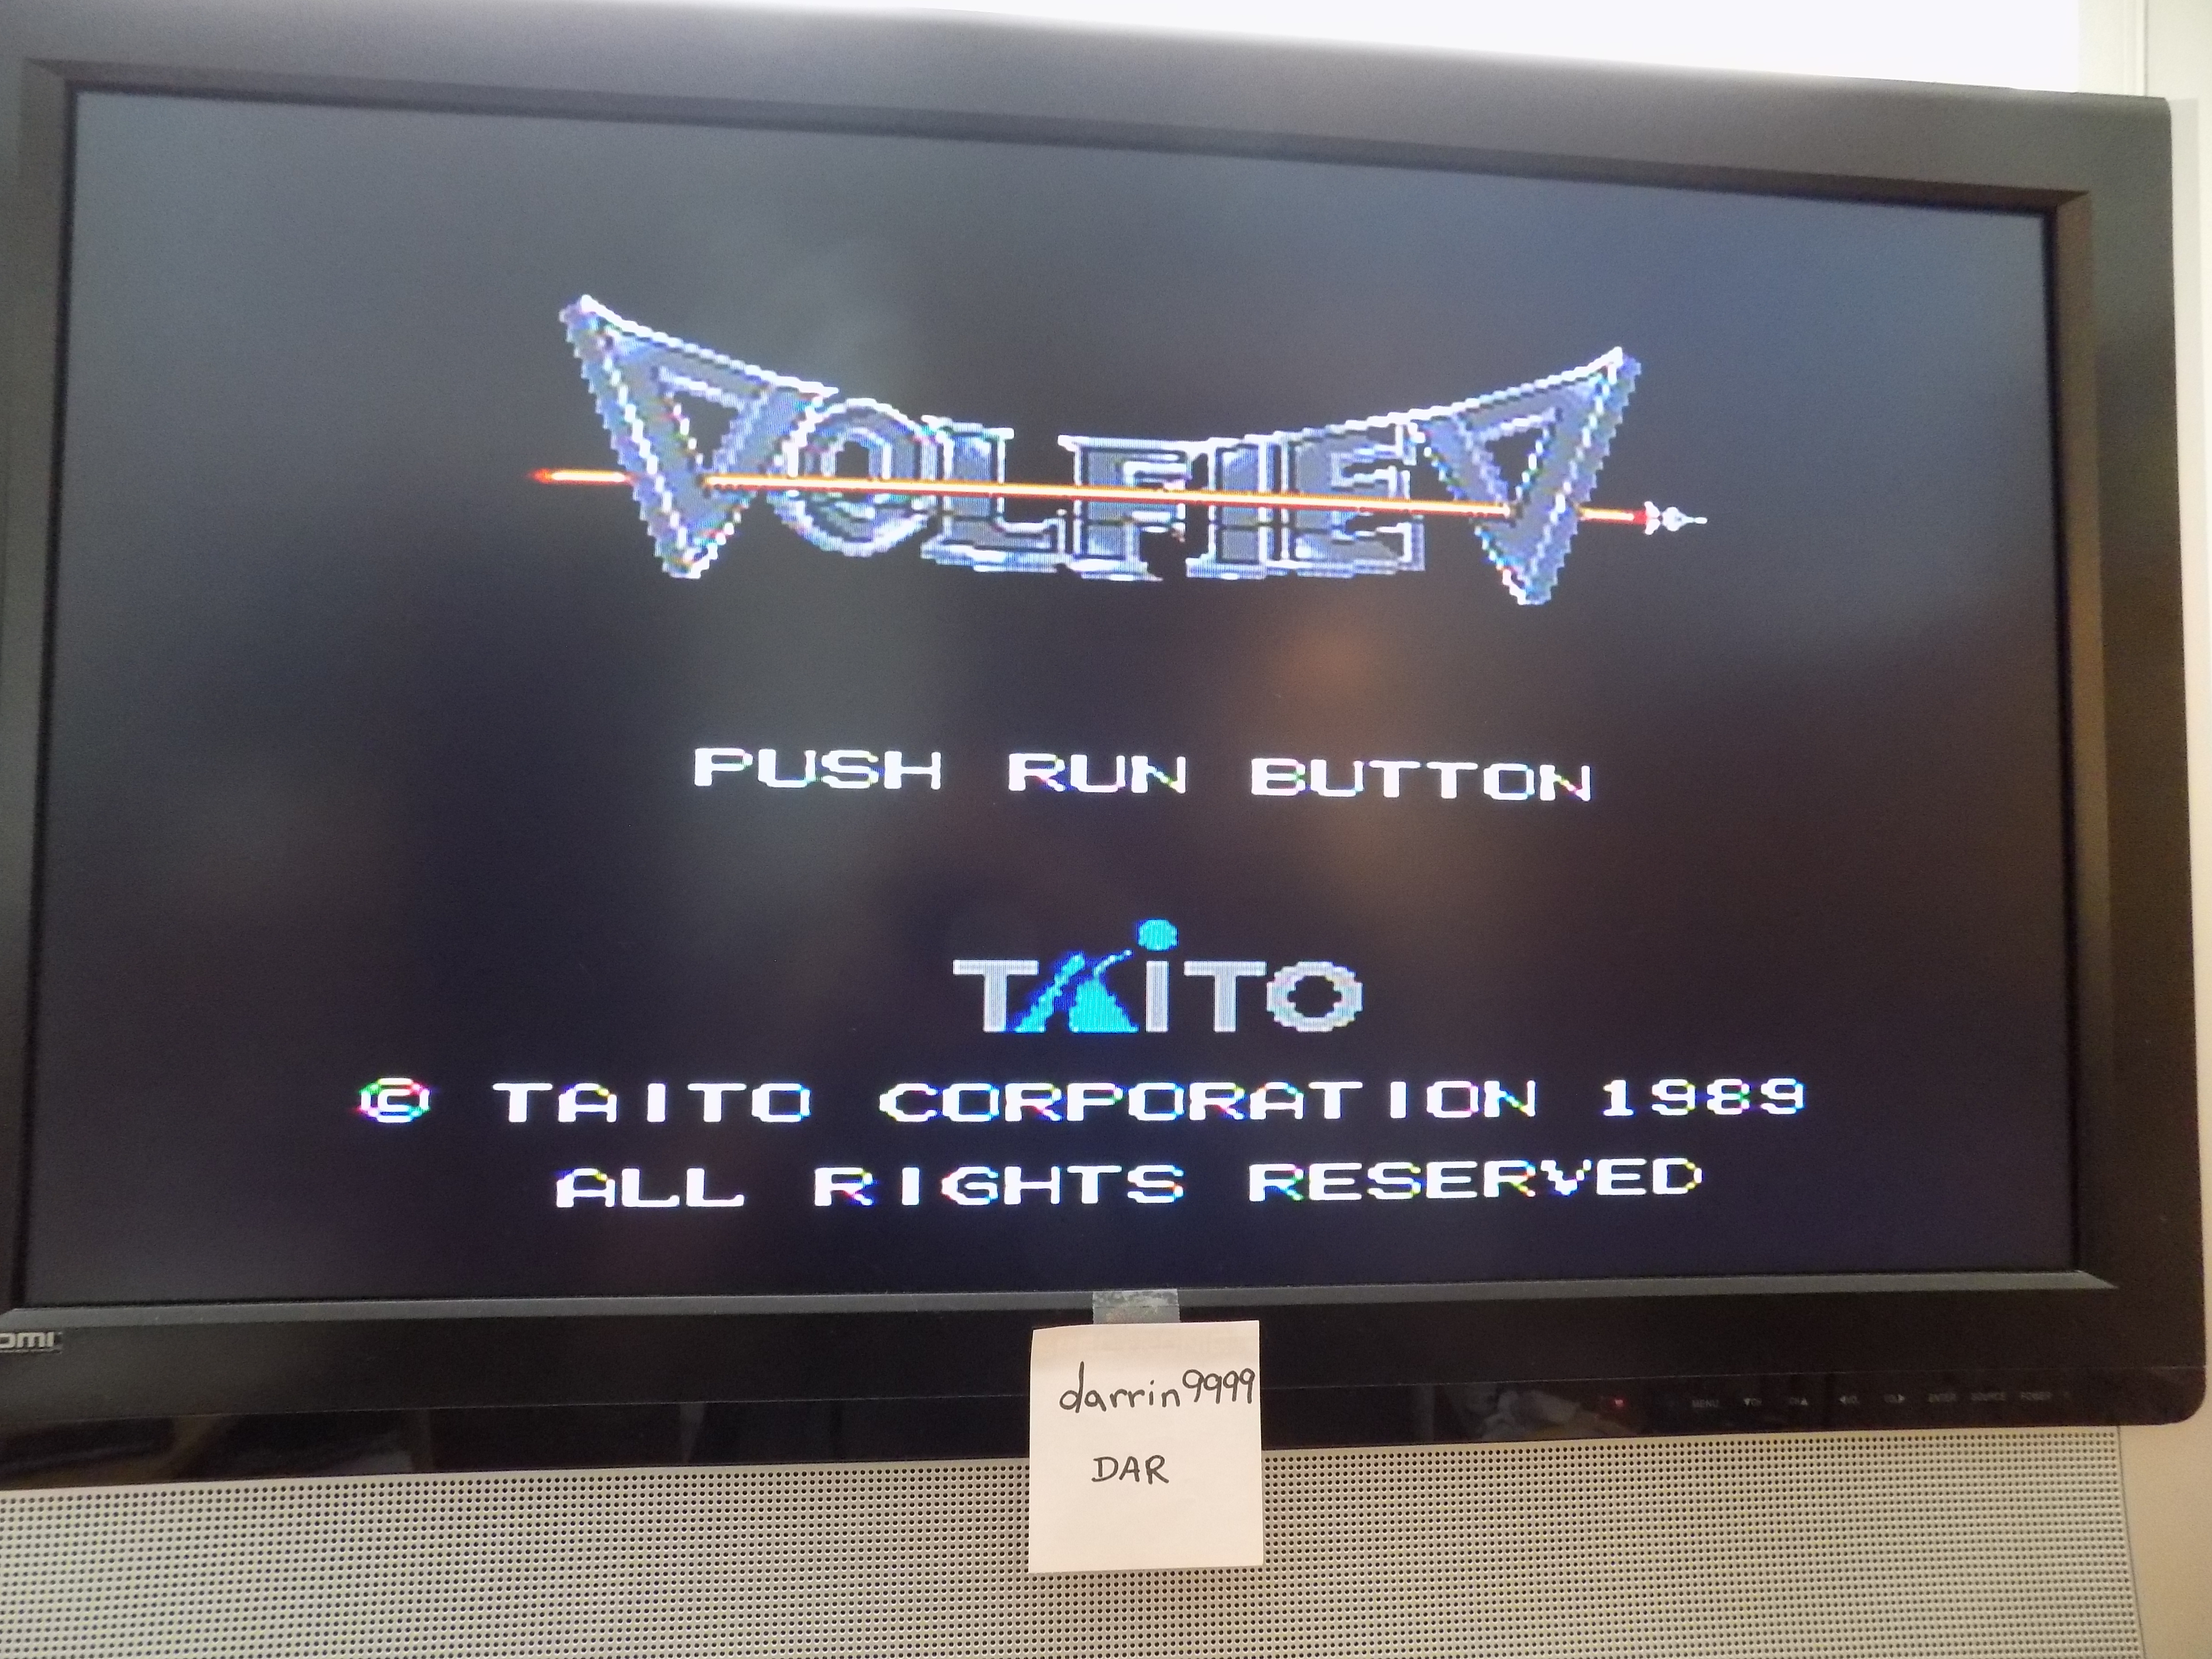 darrin9999: Volfied (TurboGrafx-16/PC Engine) 177,560 points on 2018-01-02 12:19:49